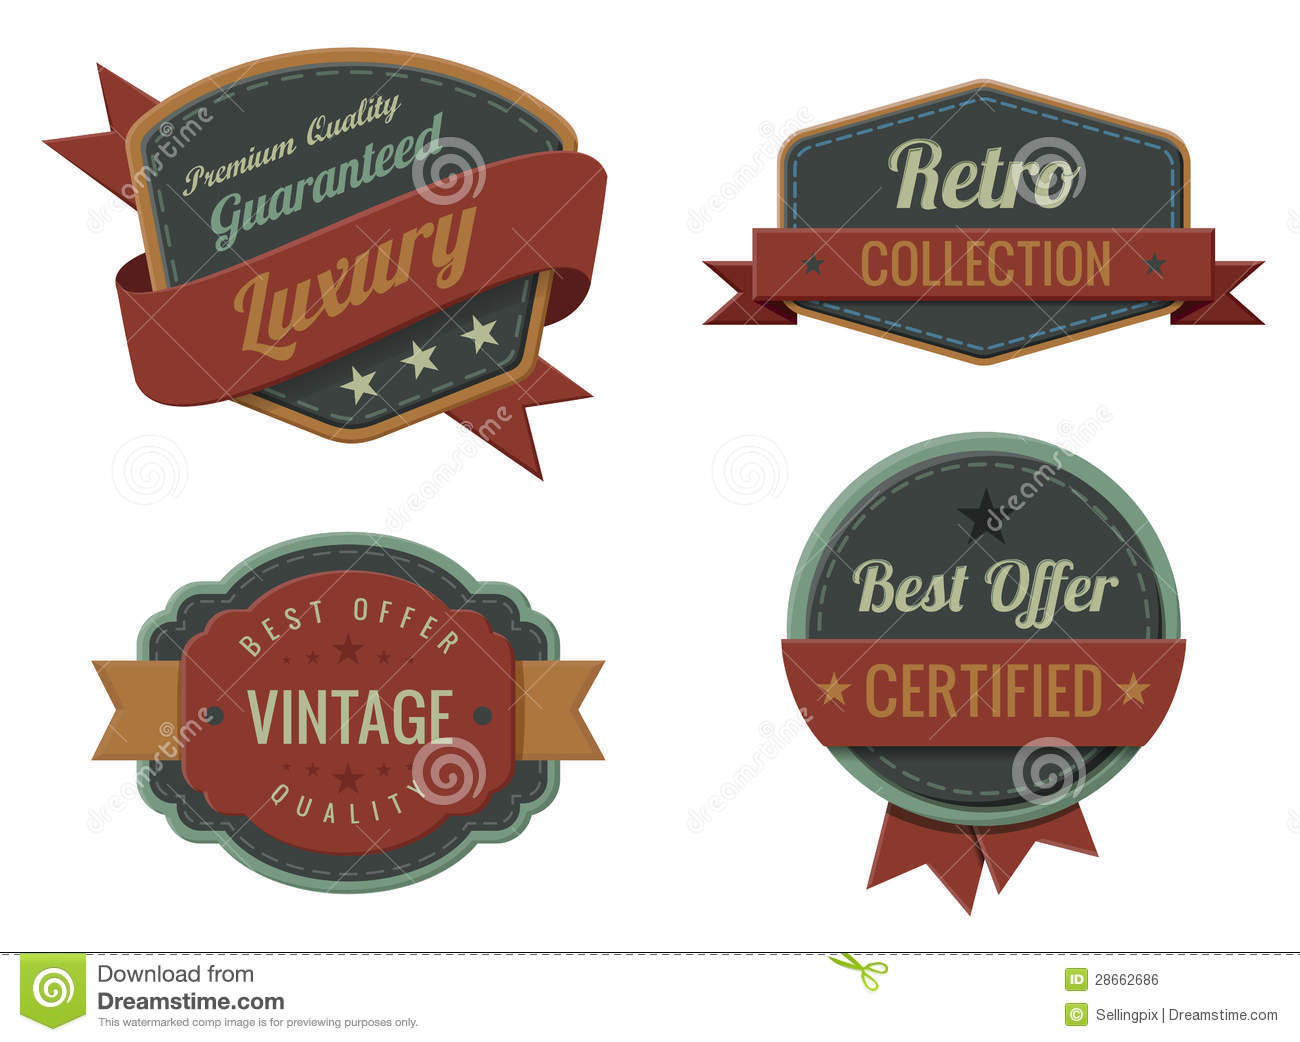 vintage label template - Ideal.vistalist.co